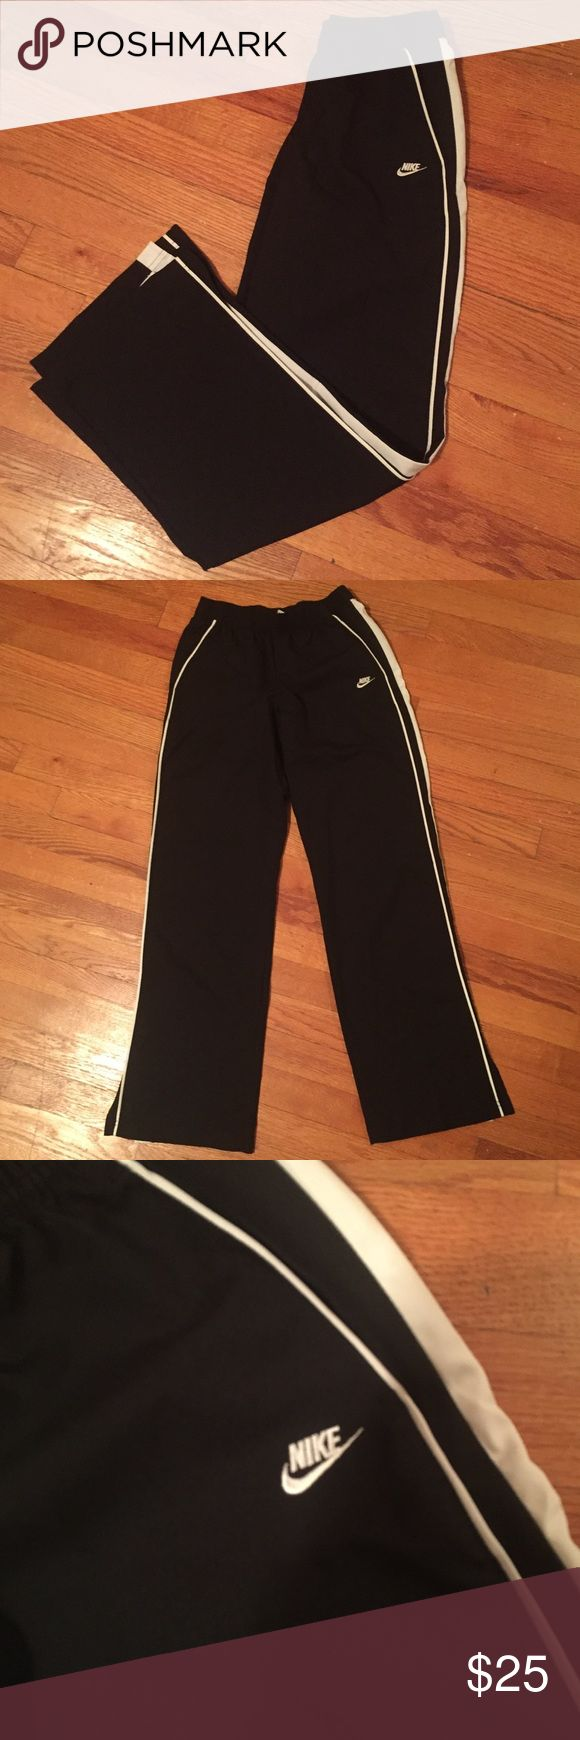 Black with white stripe Nike track pants These nike track pants are black with white stripes down the side. There are pockets and a slight slit at the bottom of each pant leg for air. Lightly worn and in great shape Nike Pants Track Pants & Joggers